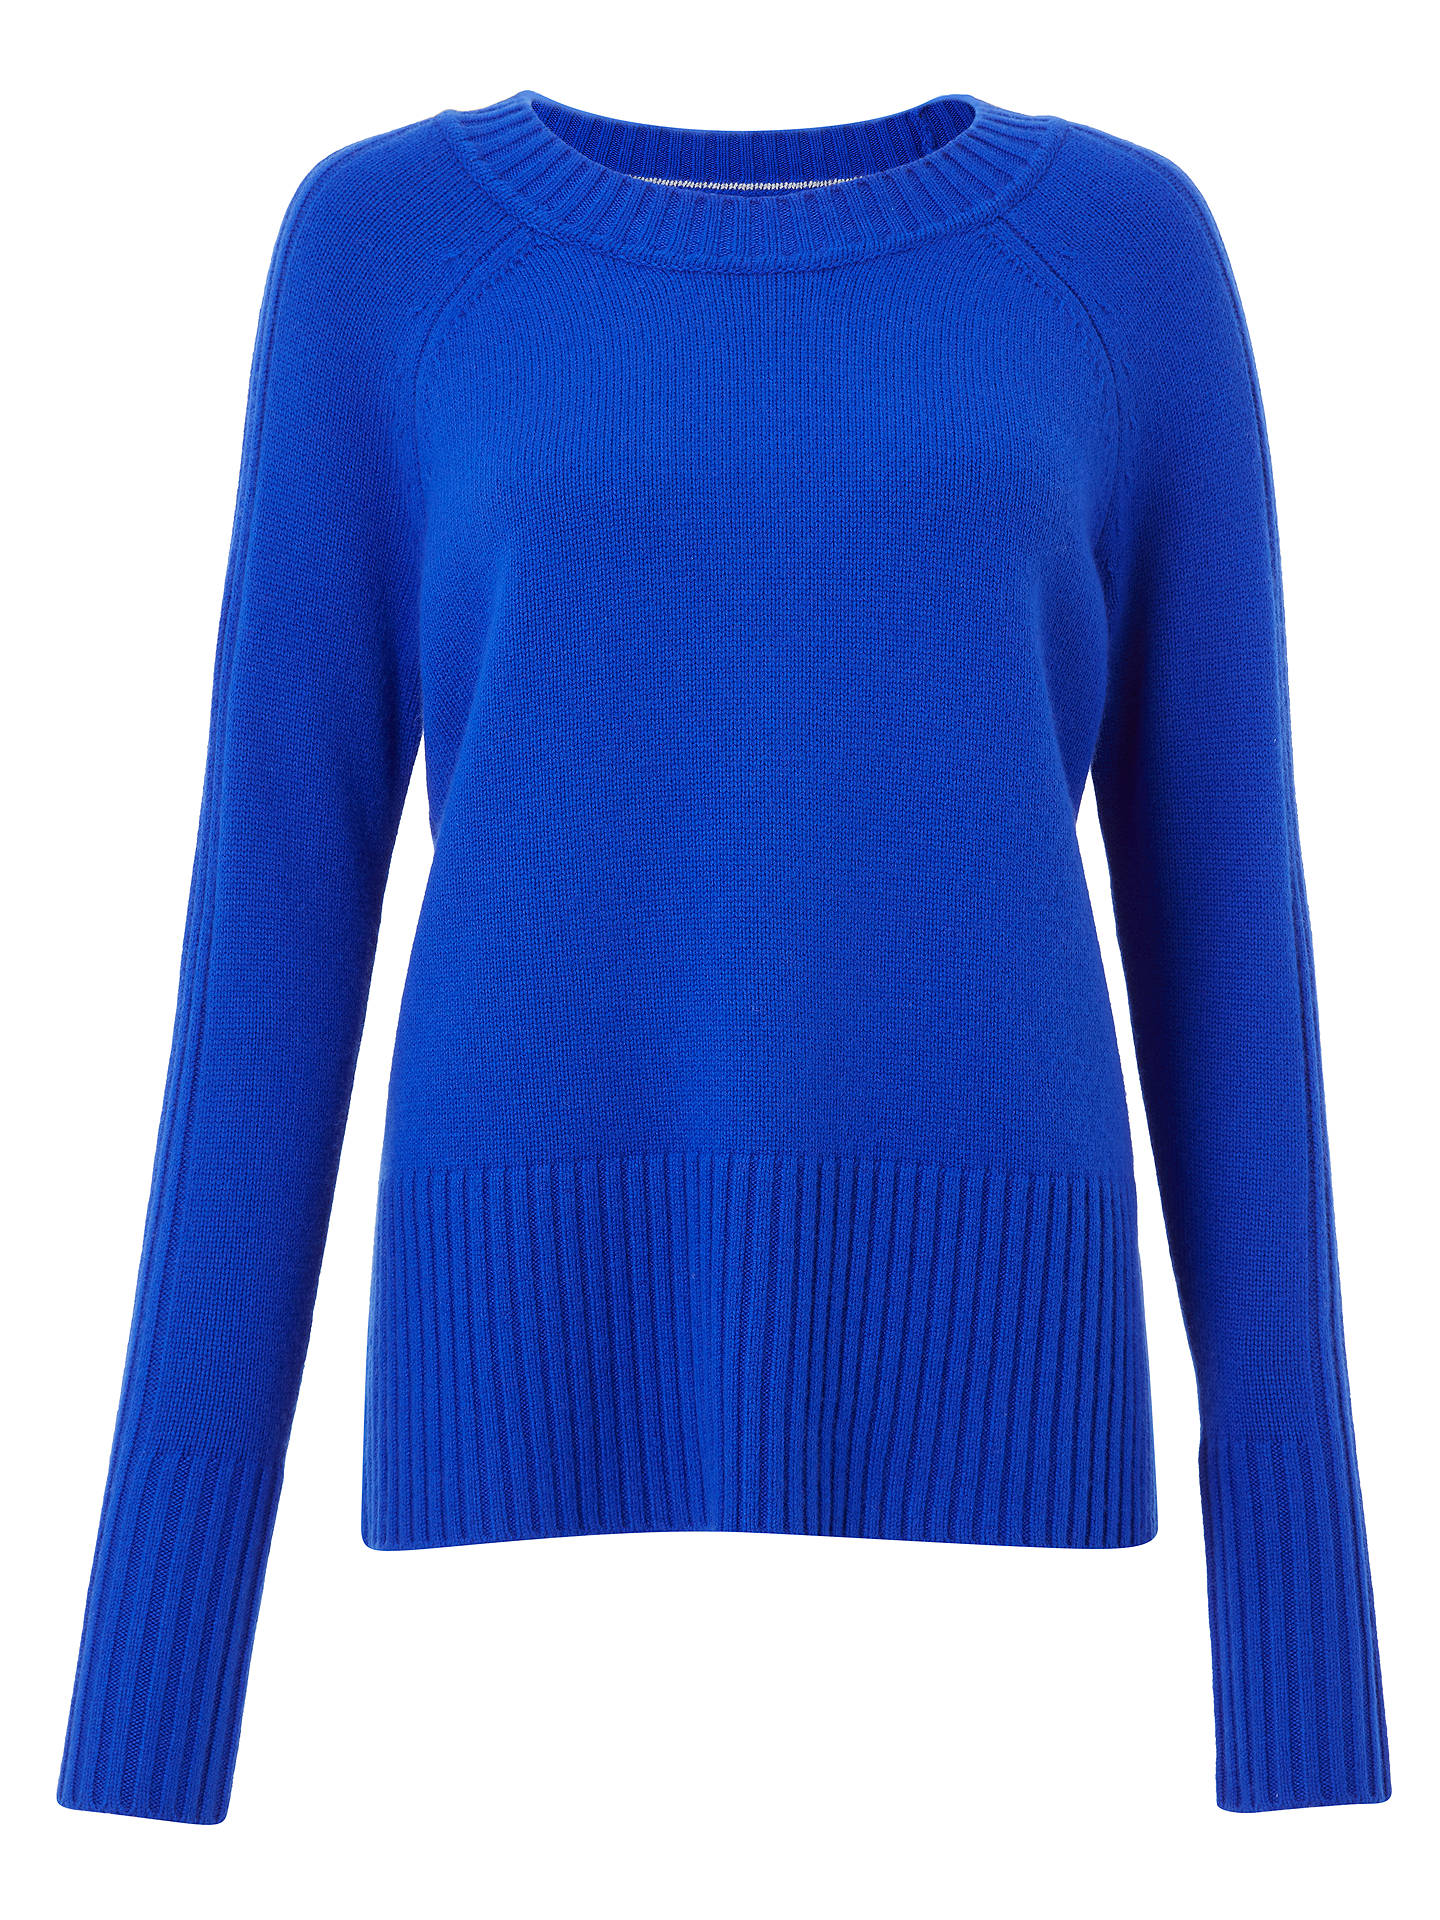 Buy Boden Heidi Jumper, Cyan, L Online at johnlewis.com